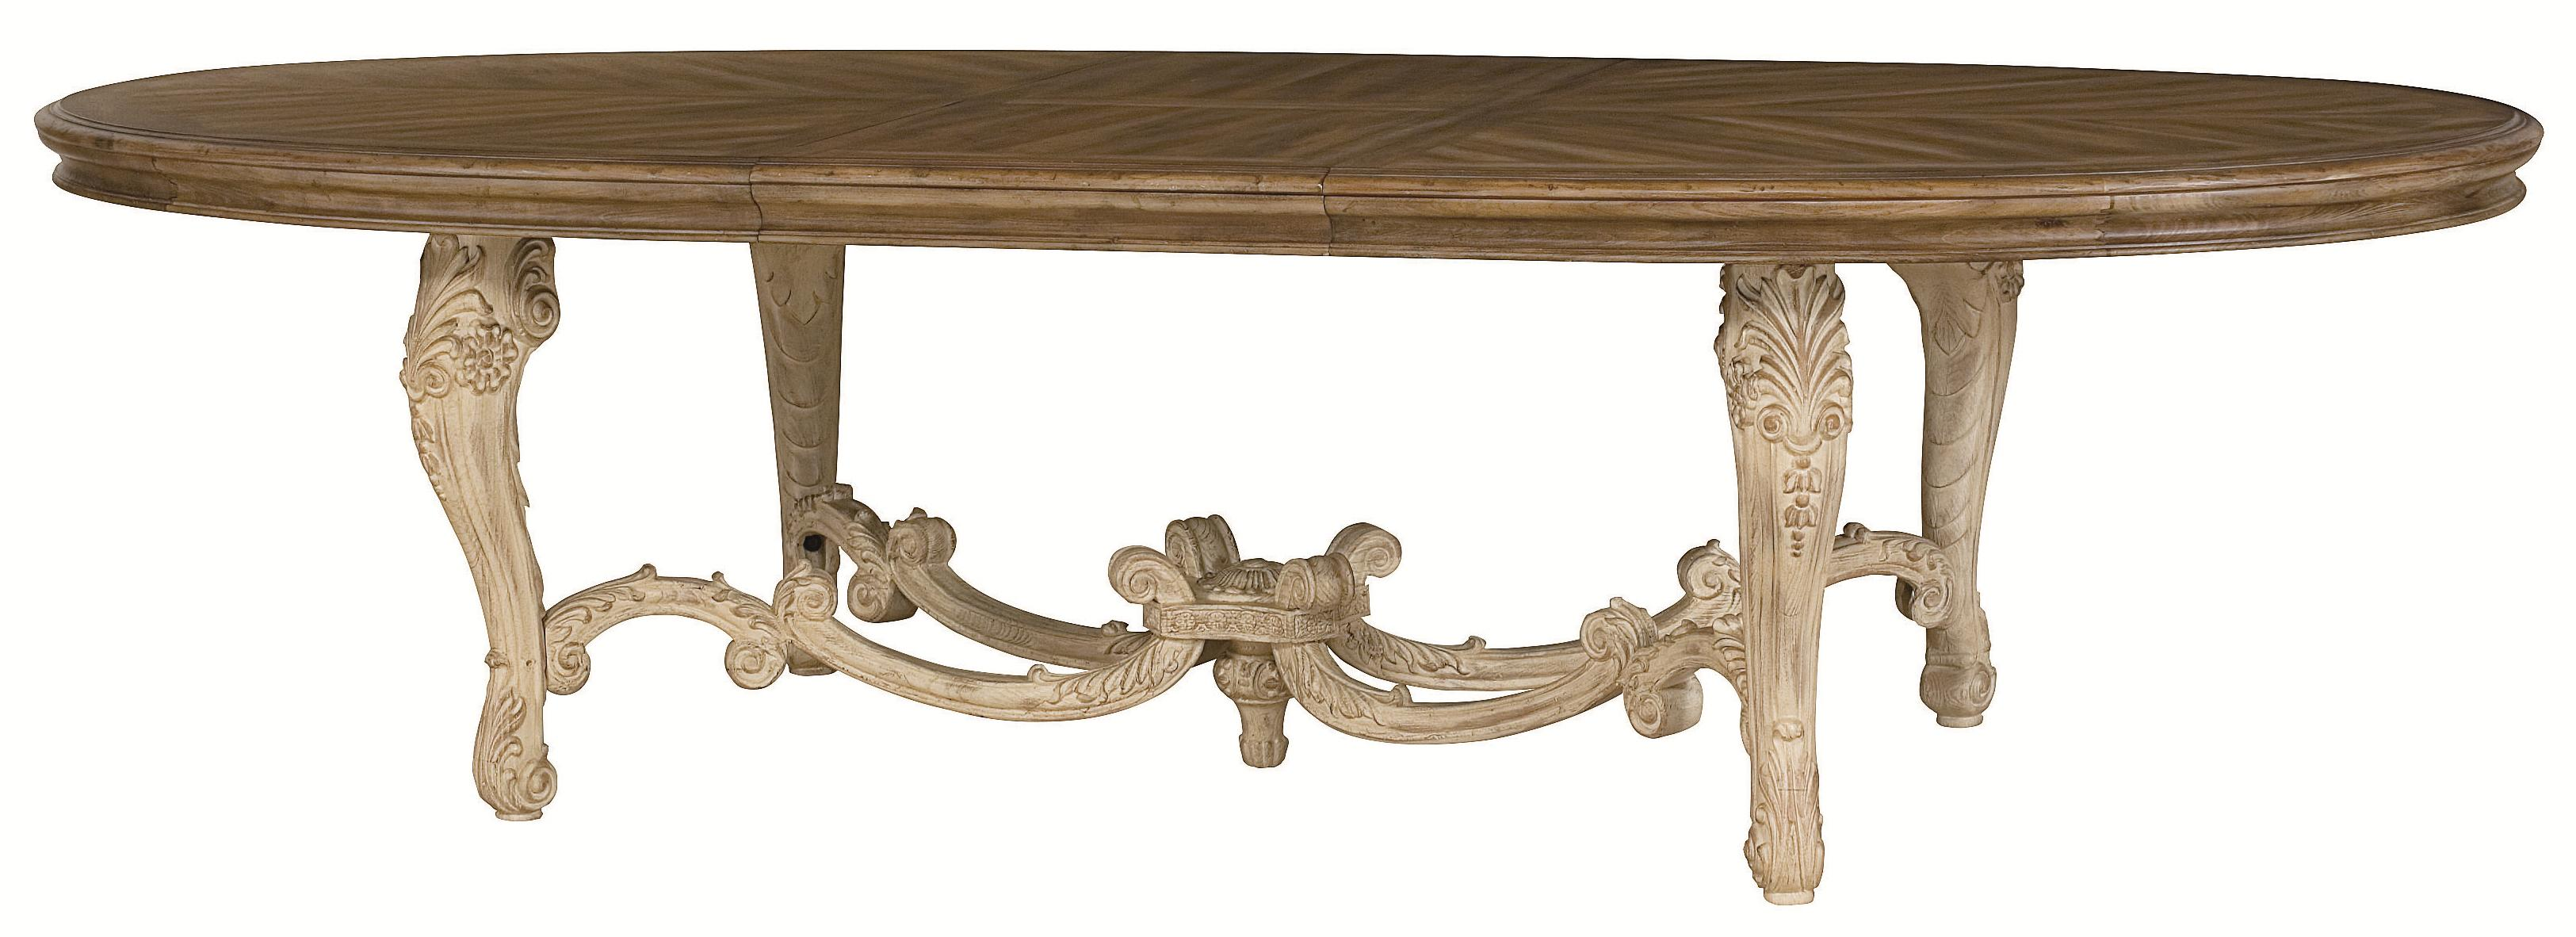 oval kitchen table Oval Dining Table with Carved Legs Stretchers